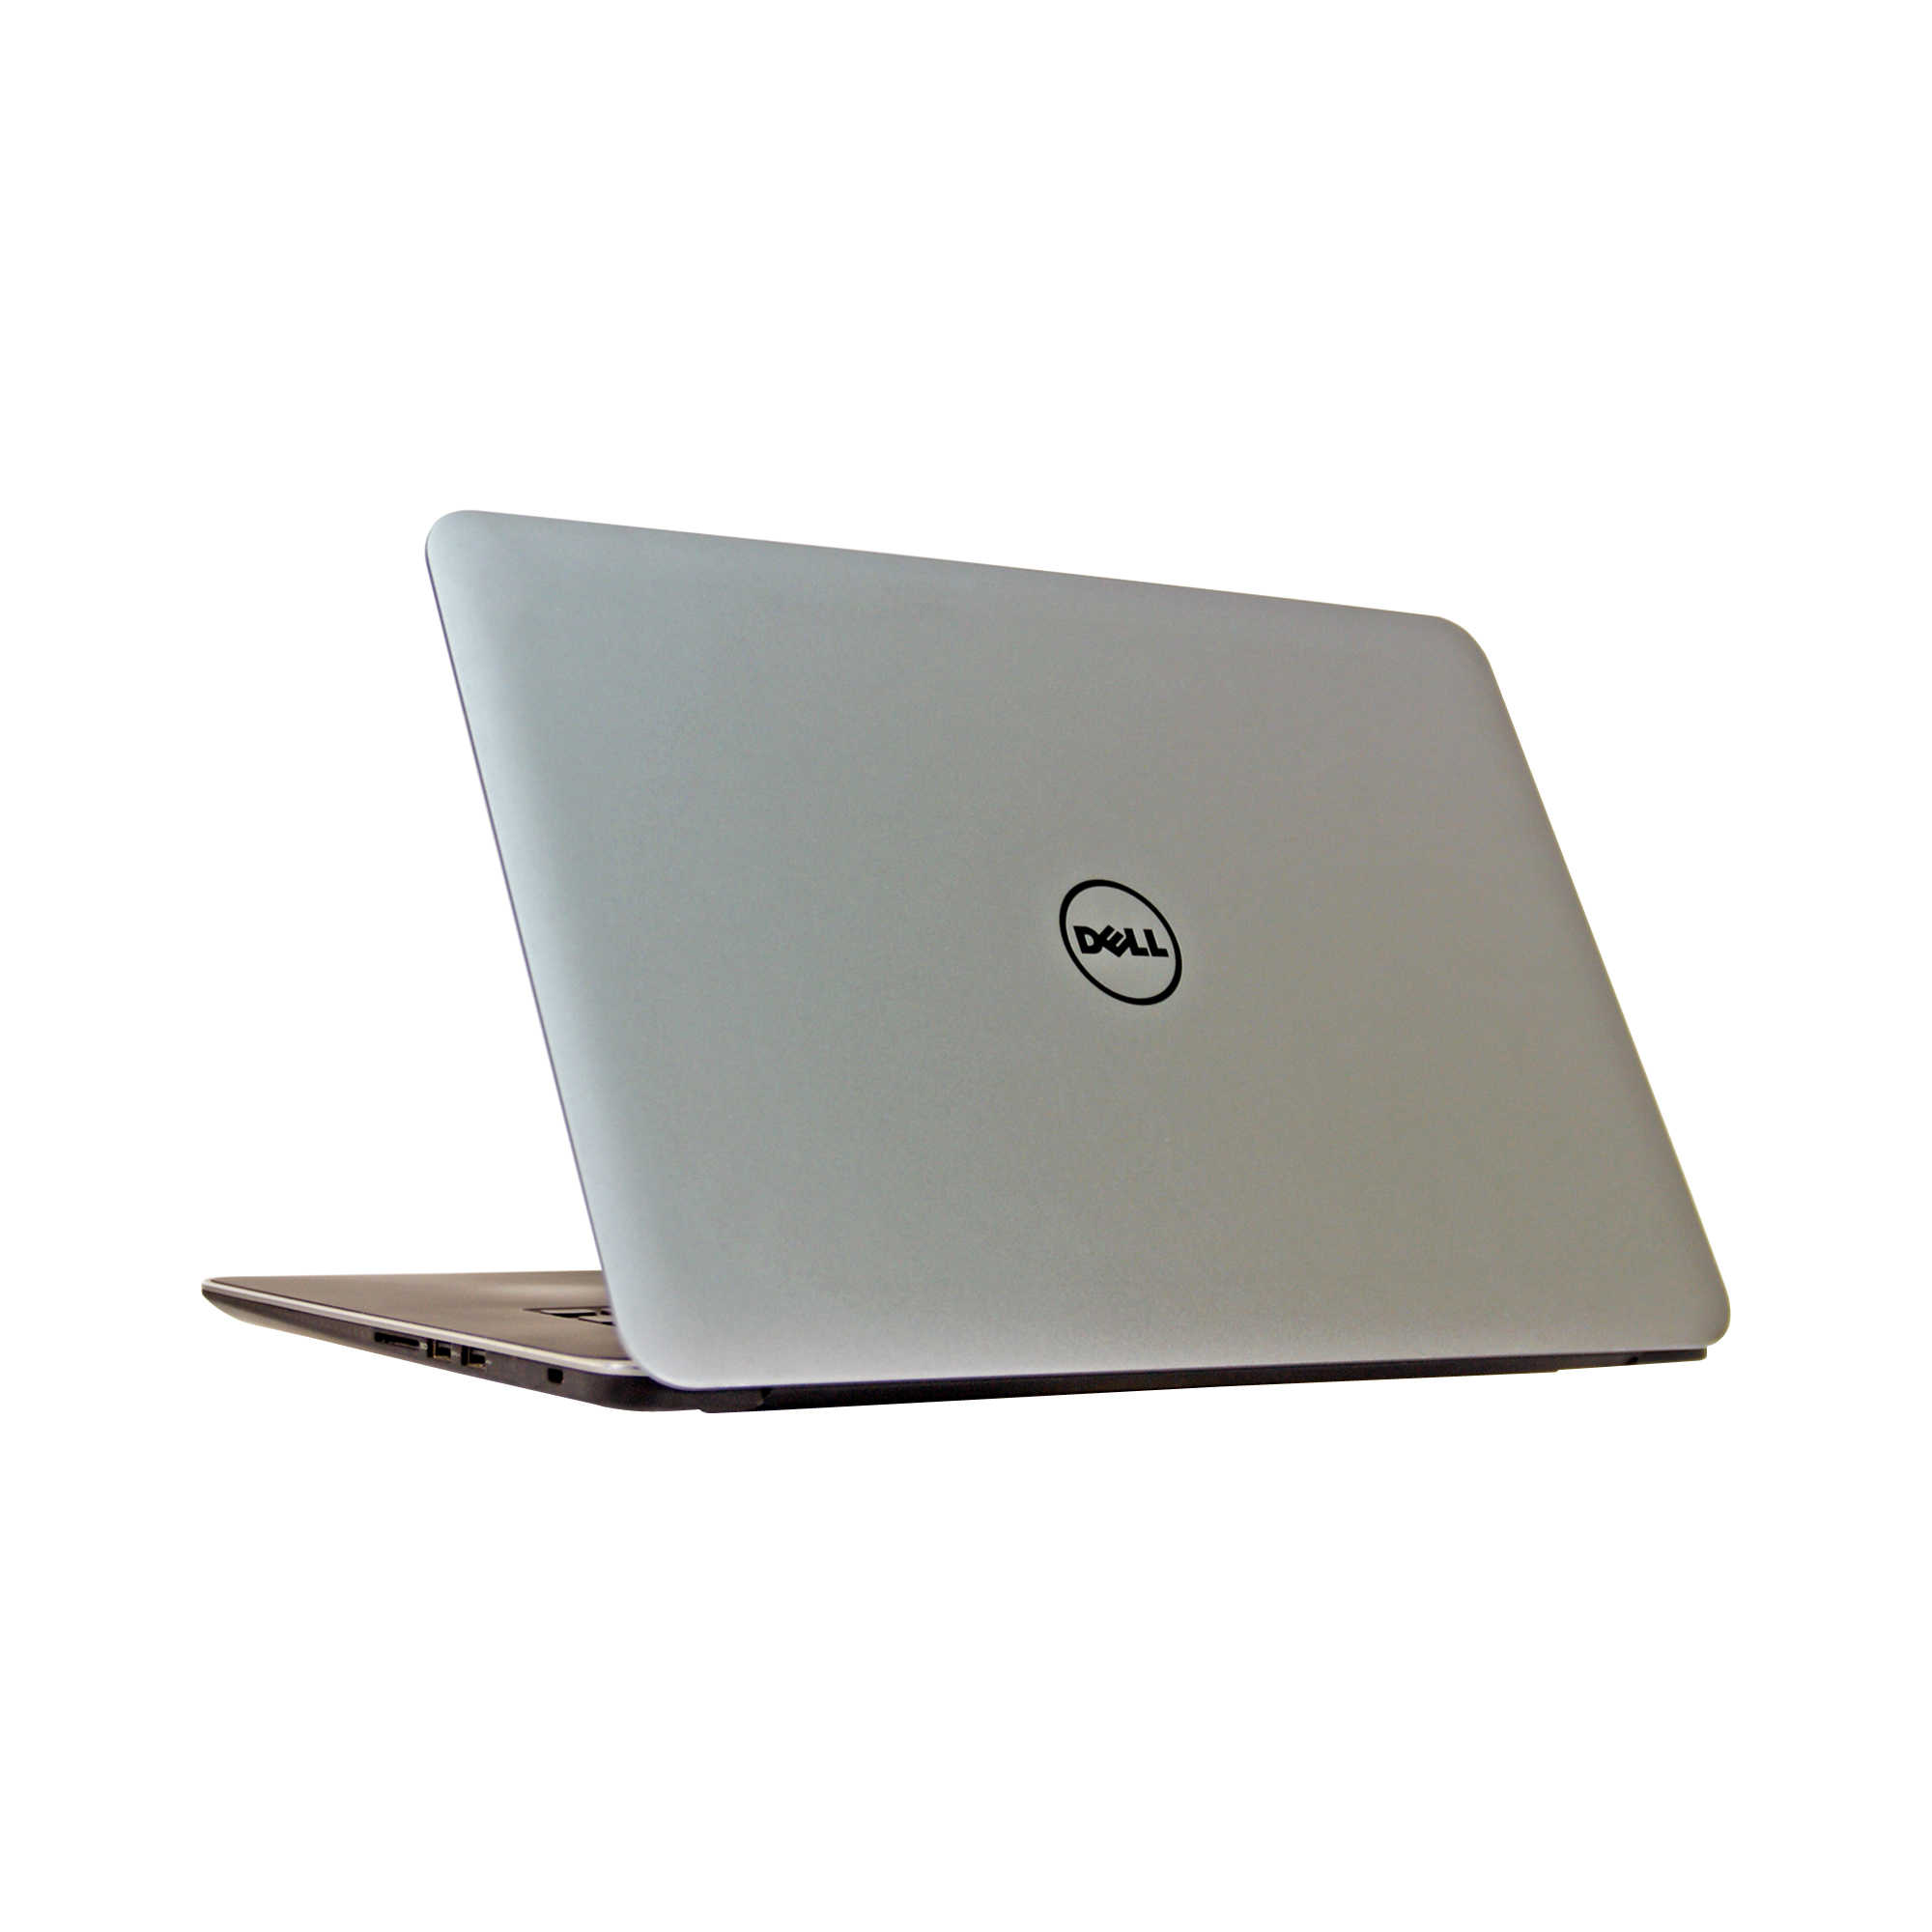 Refurbished Dell E6540 15.6' Laptop, Windows 10 Pro, Intel Core i7-4600M 2.9GHz, 16GB RAM, 240GB Solid State Drive, DVDRW